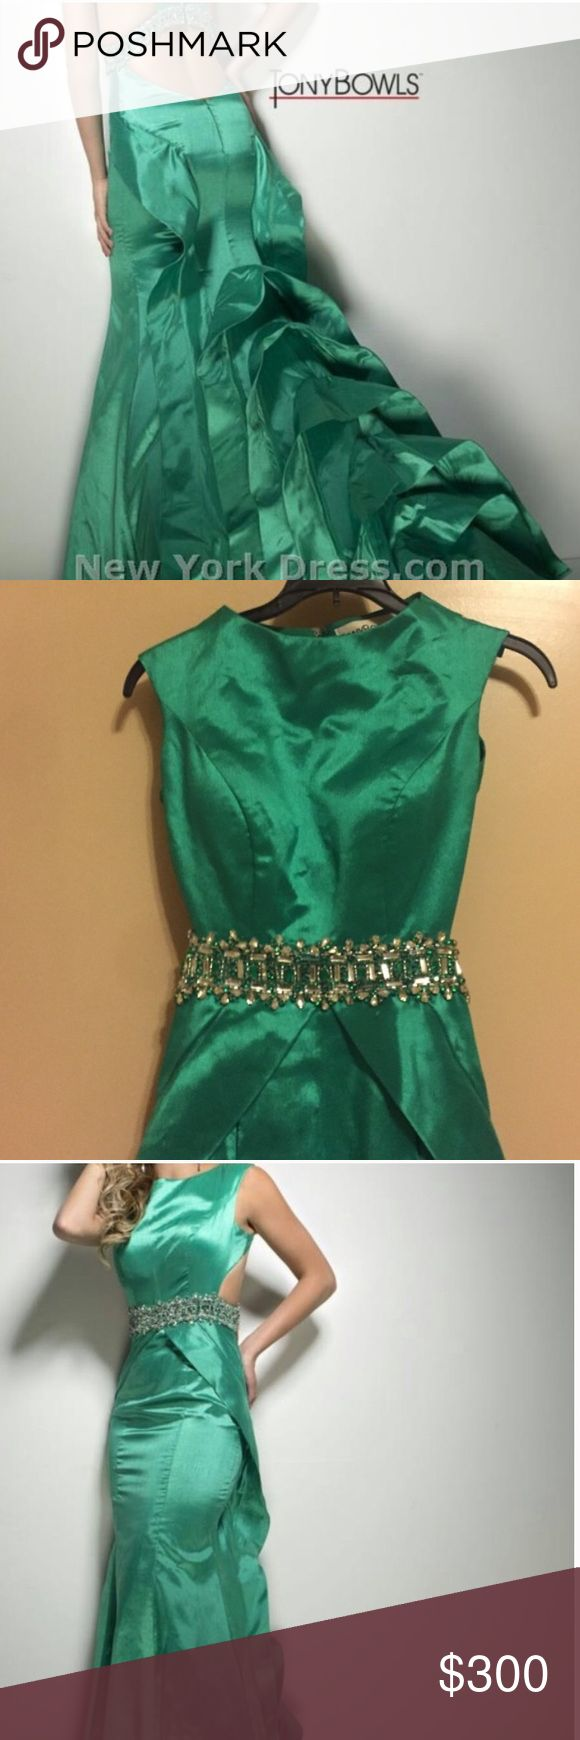 Designer Tony Bowls prom dress Tony bowl size 2 authentic dress worn once this price is a steal but negotiation open Tony Bowls Dresses Prom